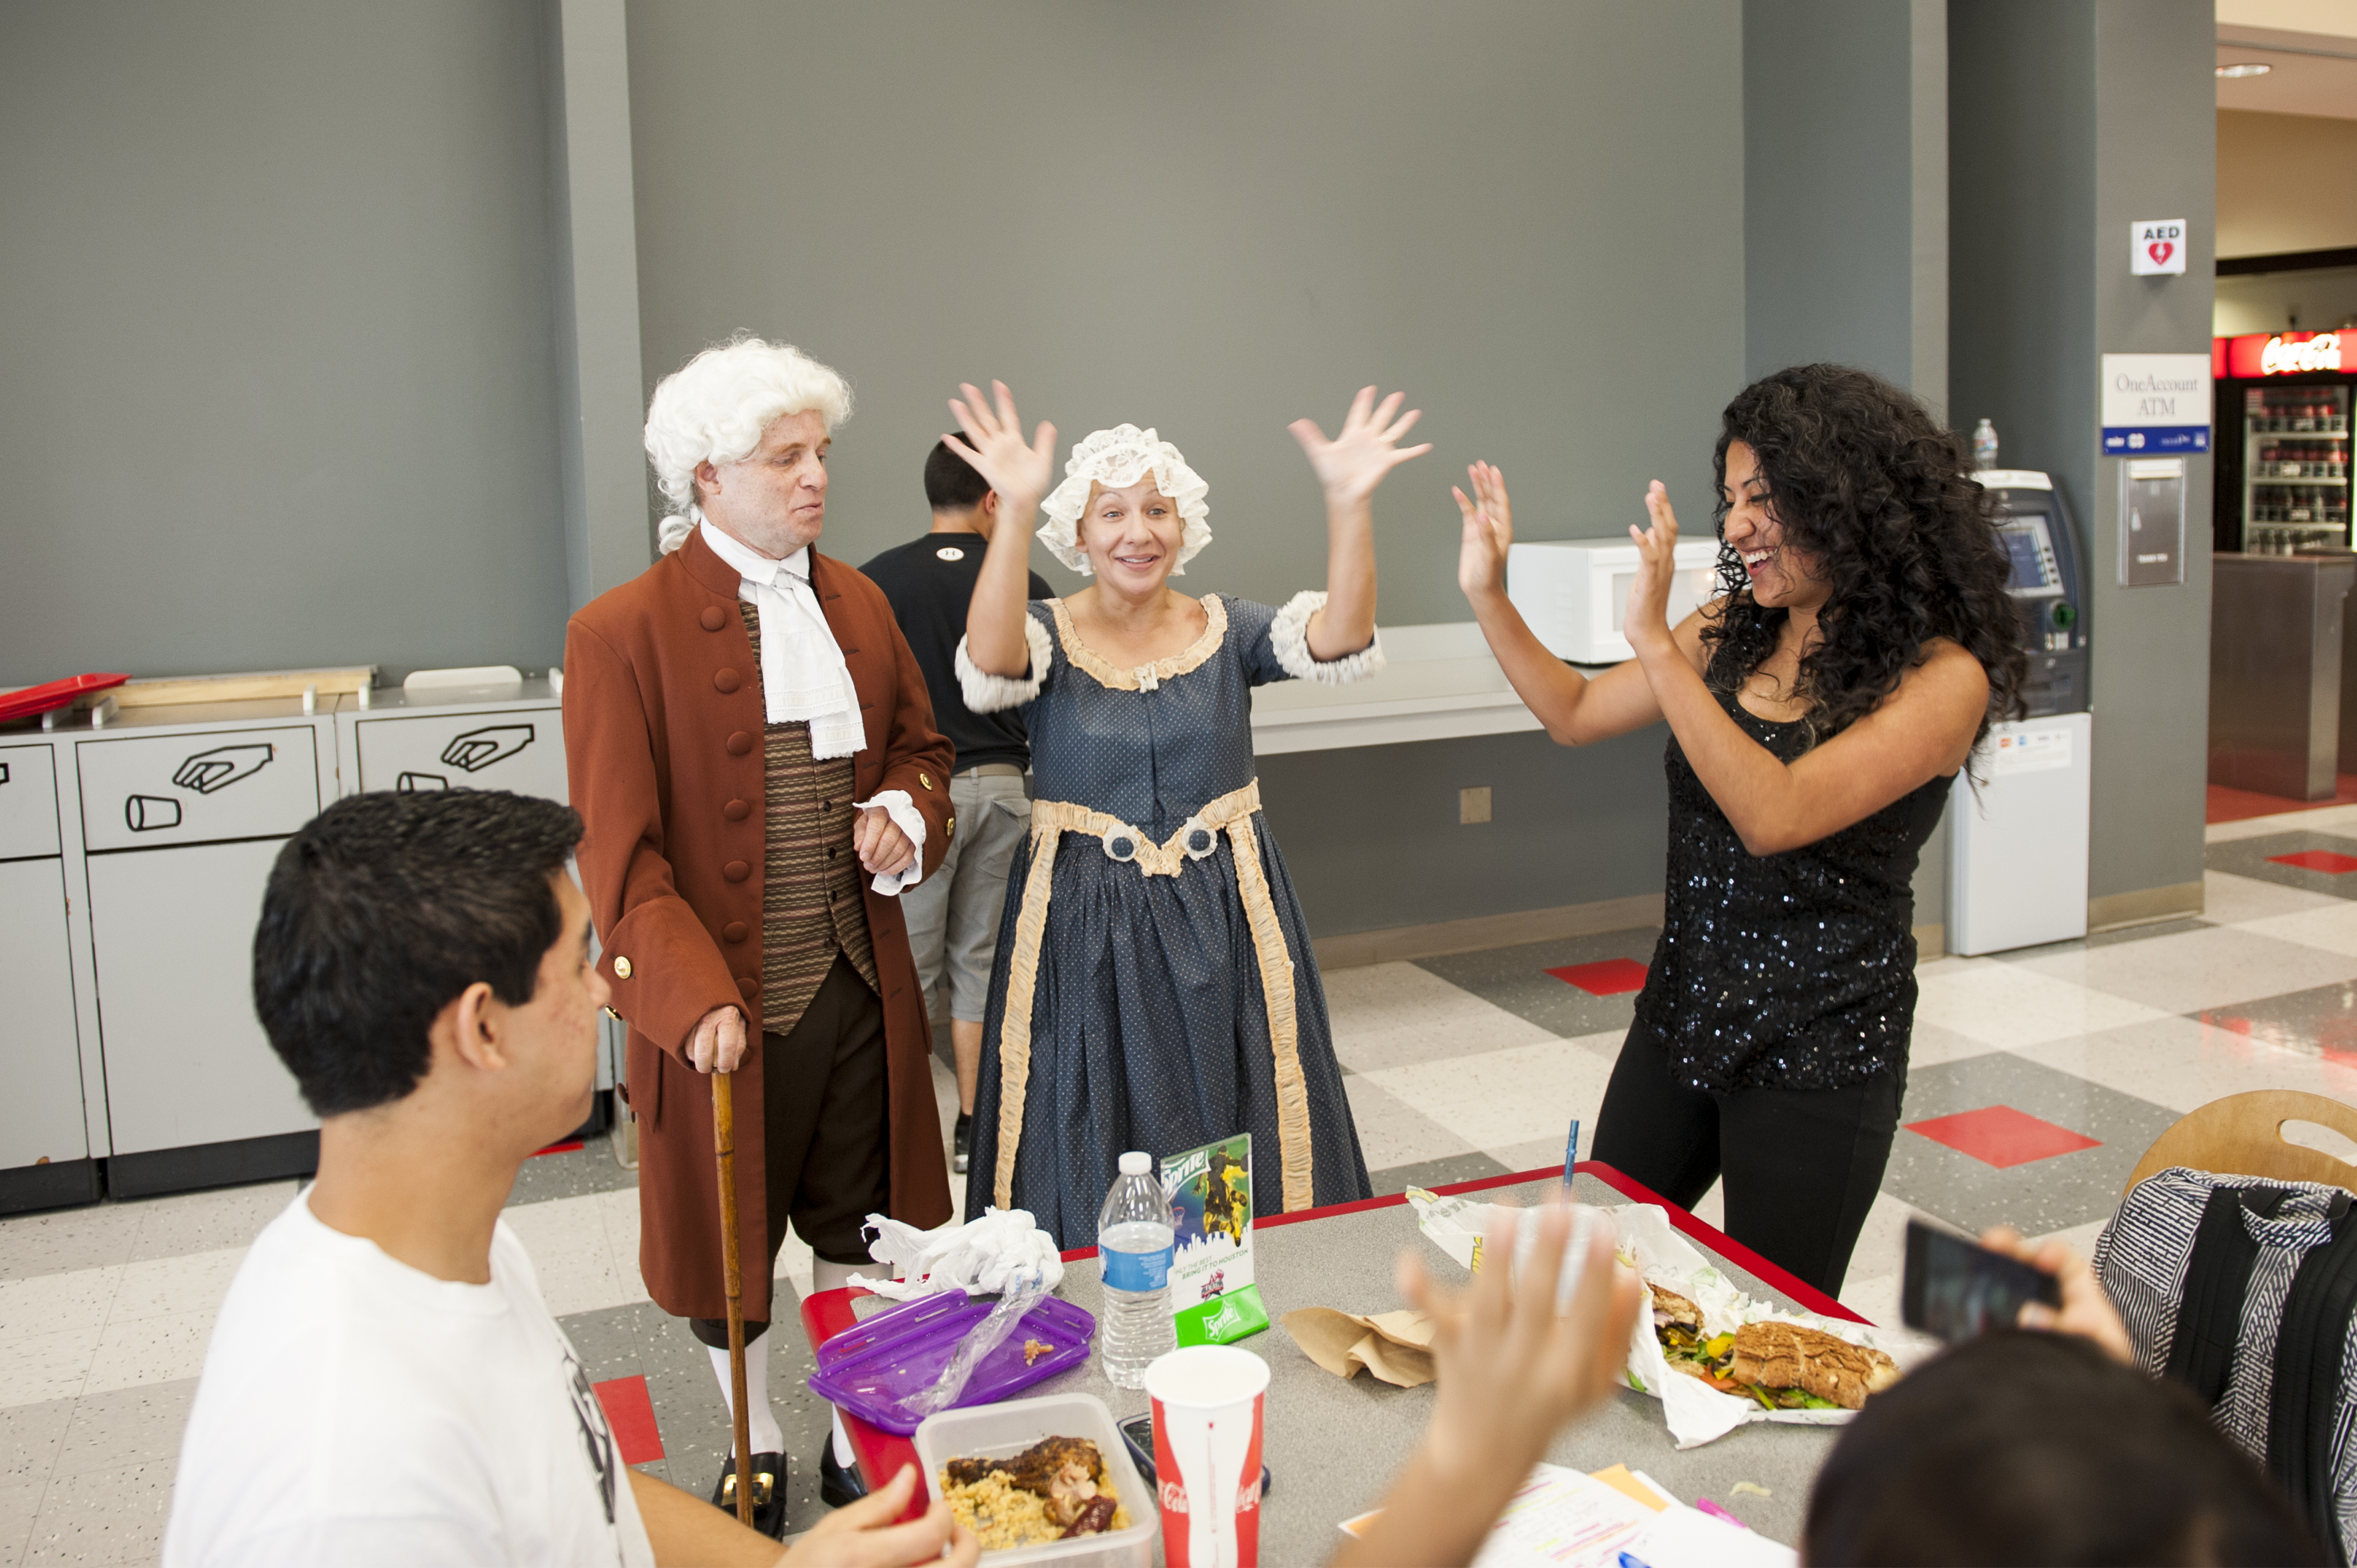 Benjamin Franklin and John and Abigail Adams visited UHD for Constitution Day UHD.